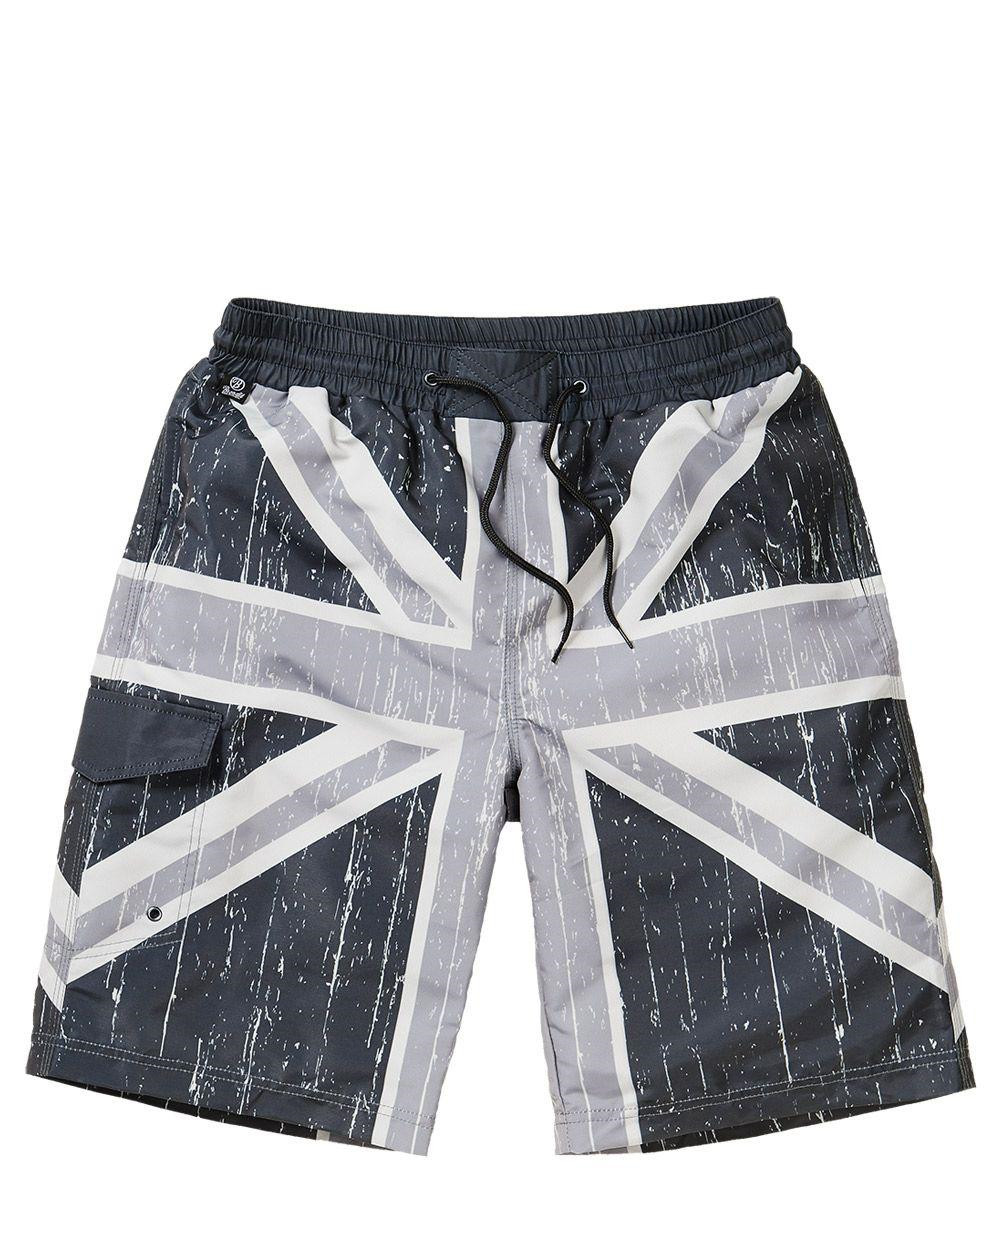 Image of   Brandit Badeshorts (Union Jack, L/XL)